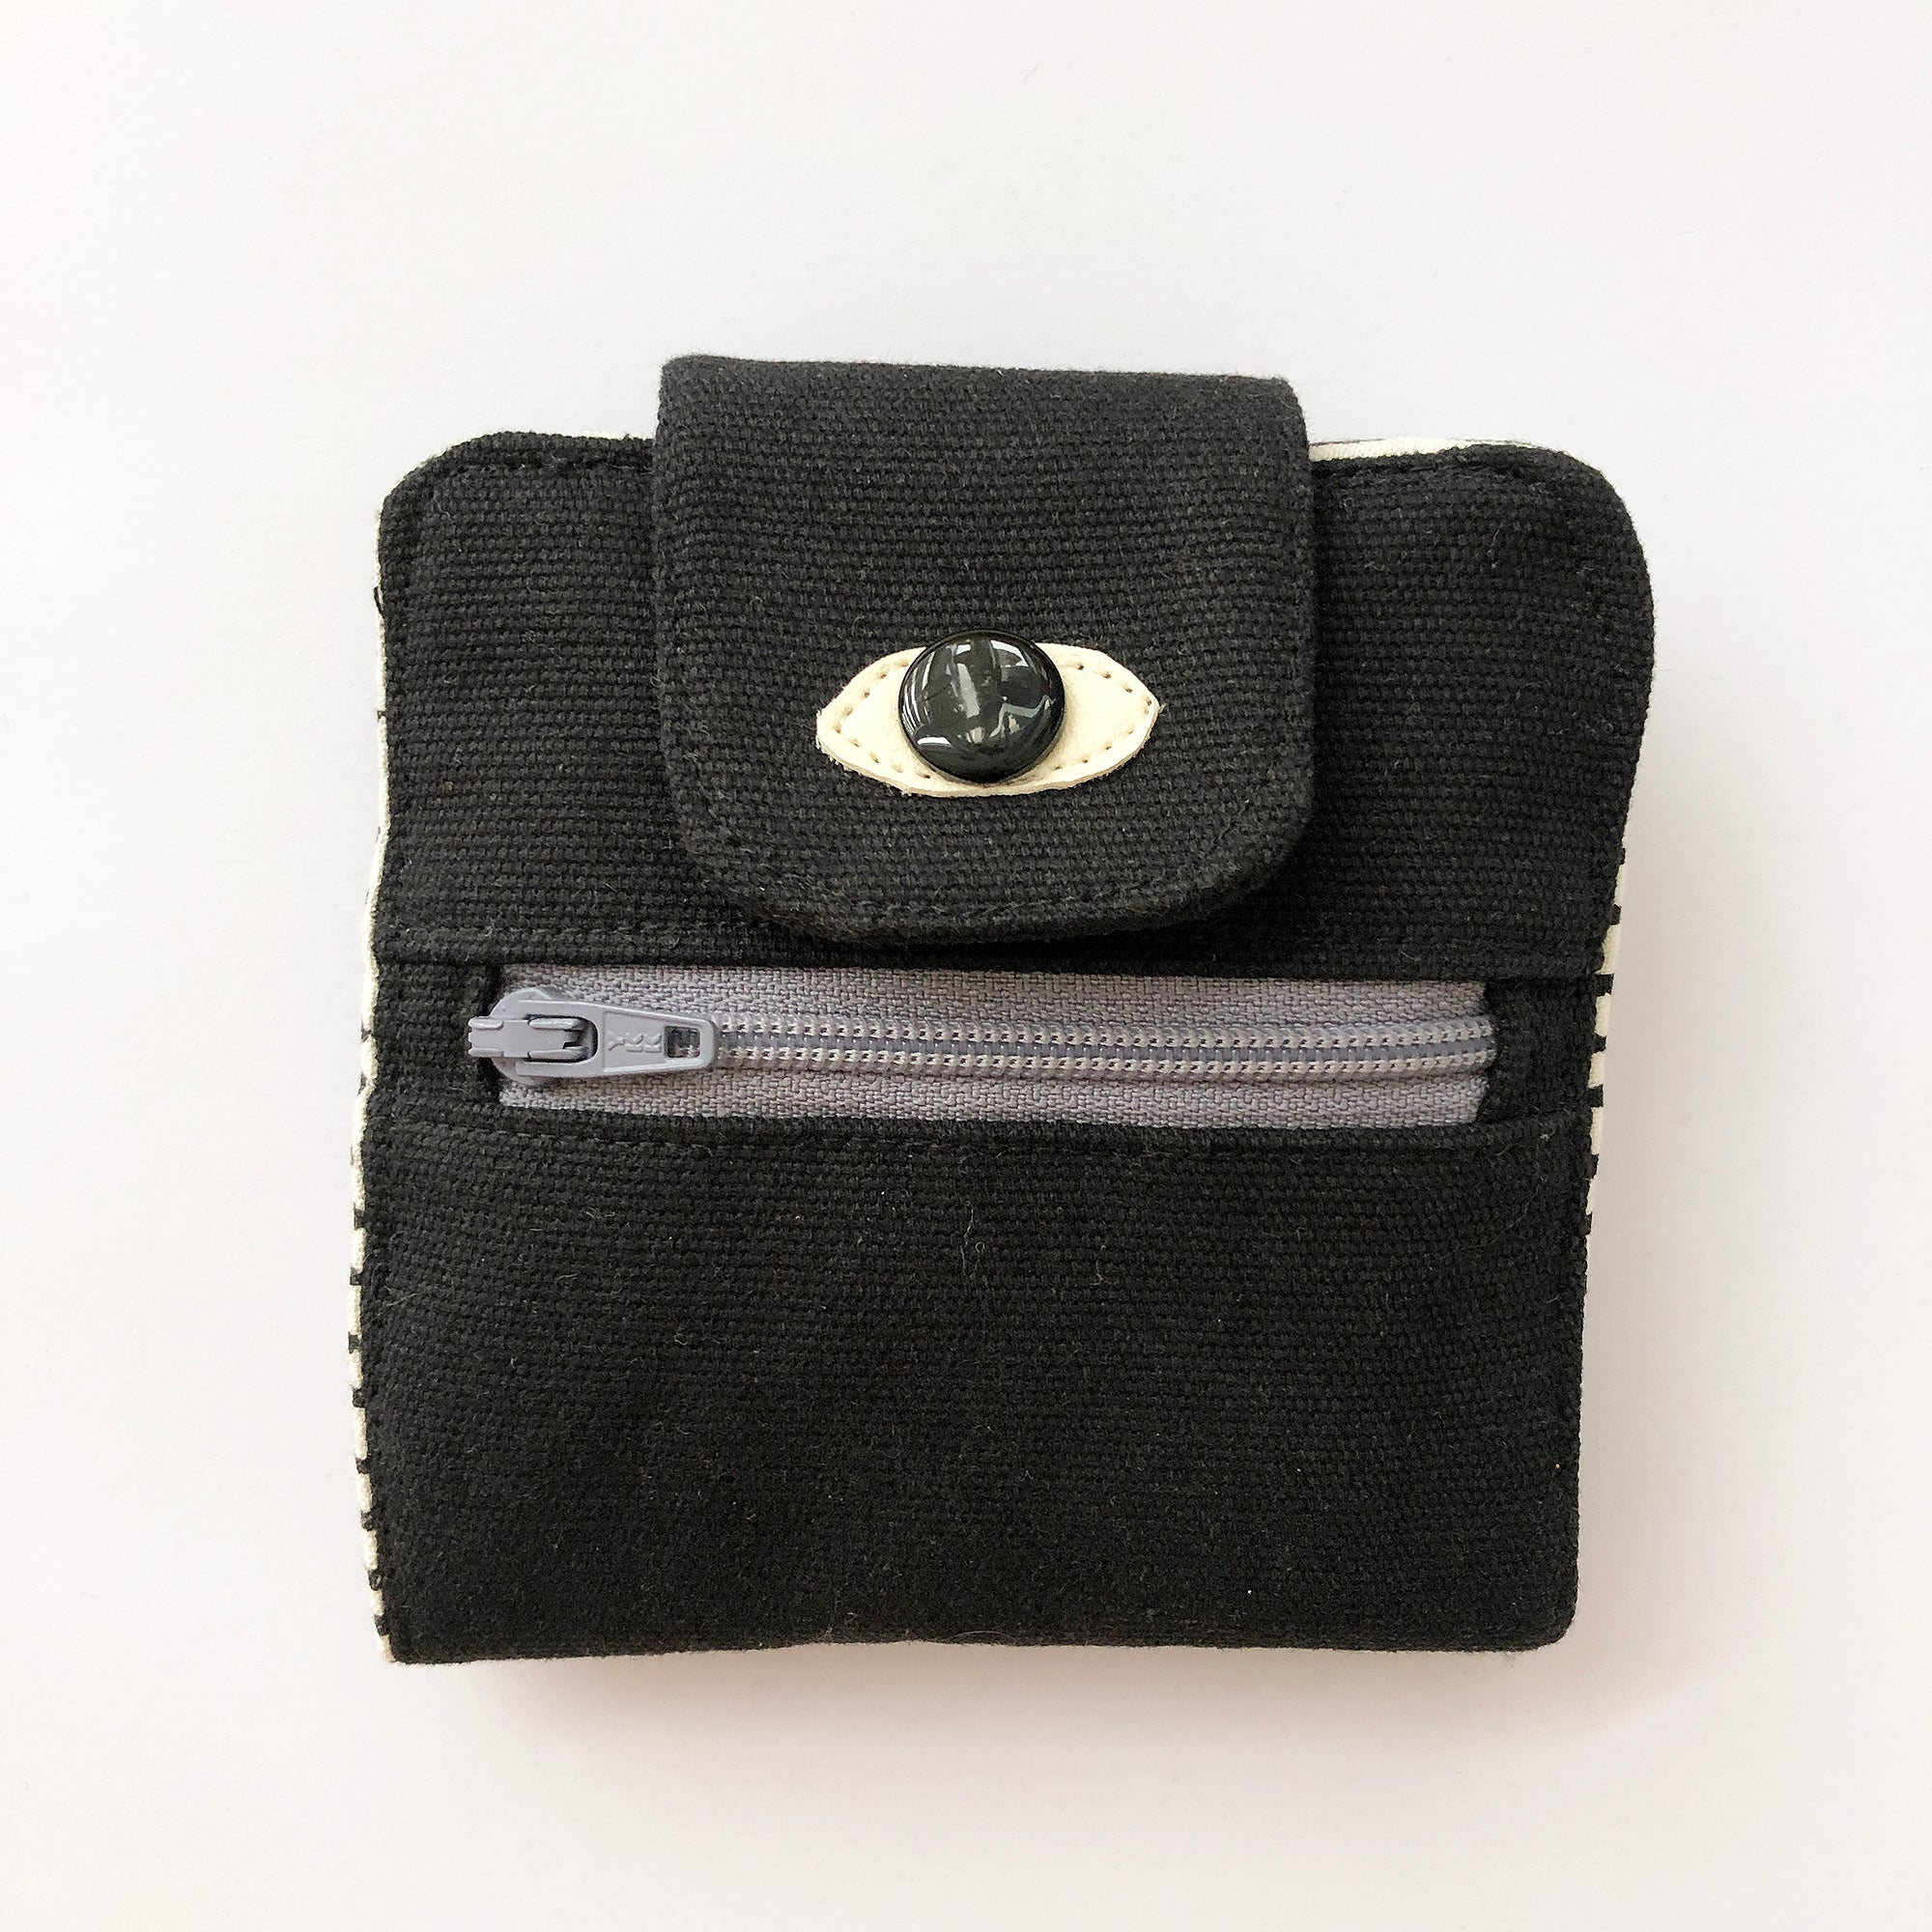 Black Cyclops wallet